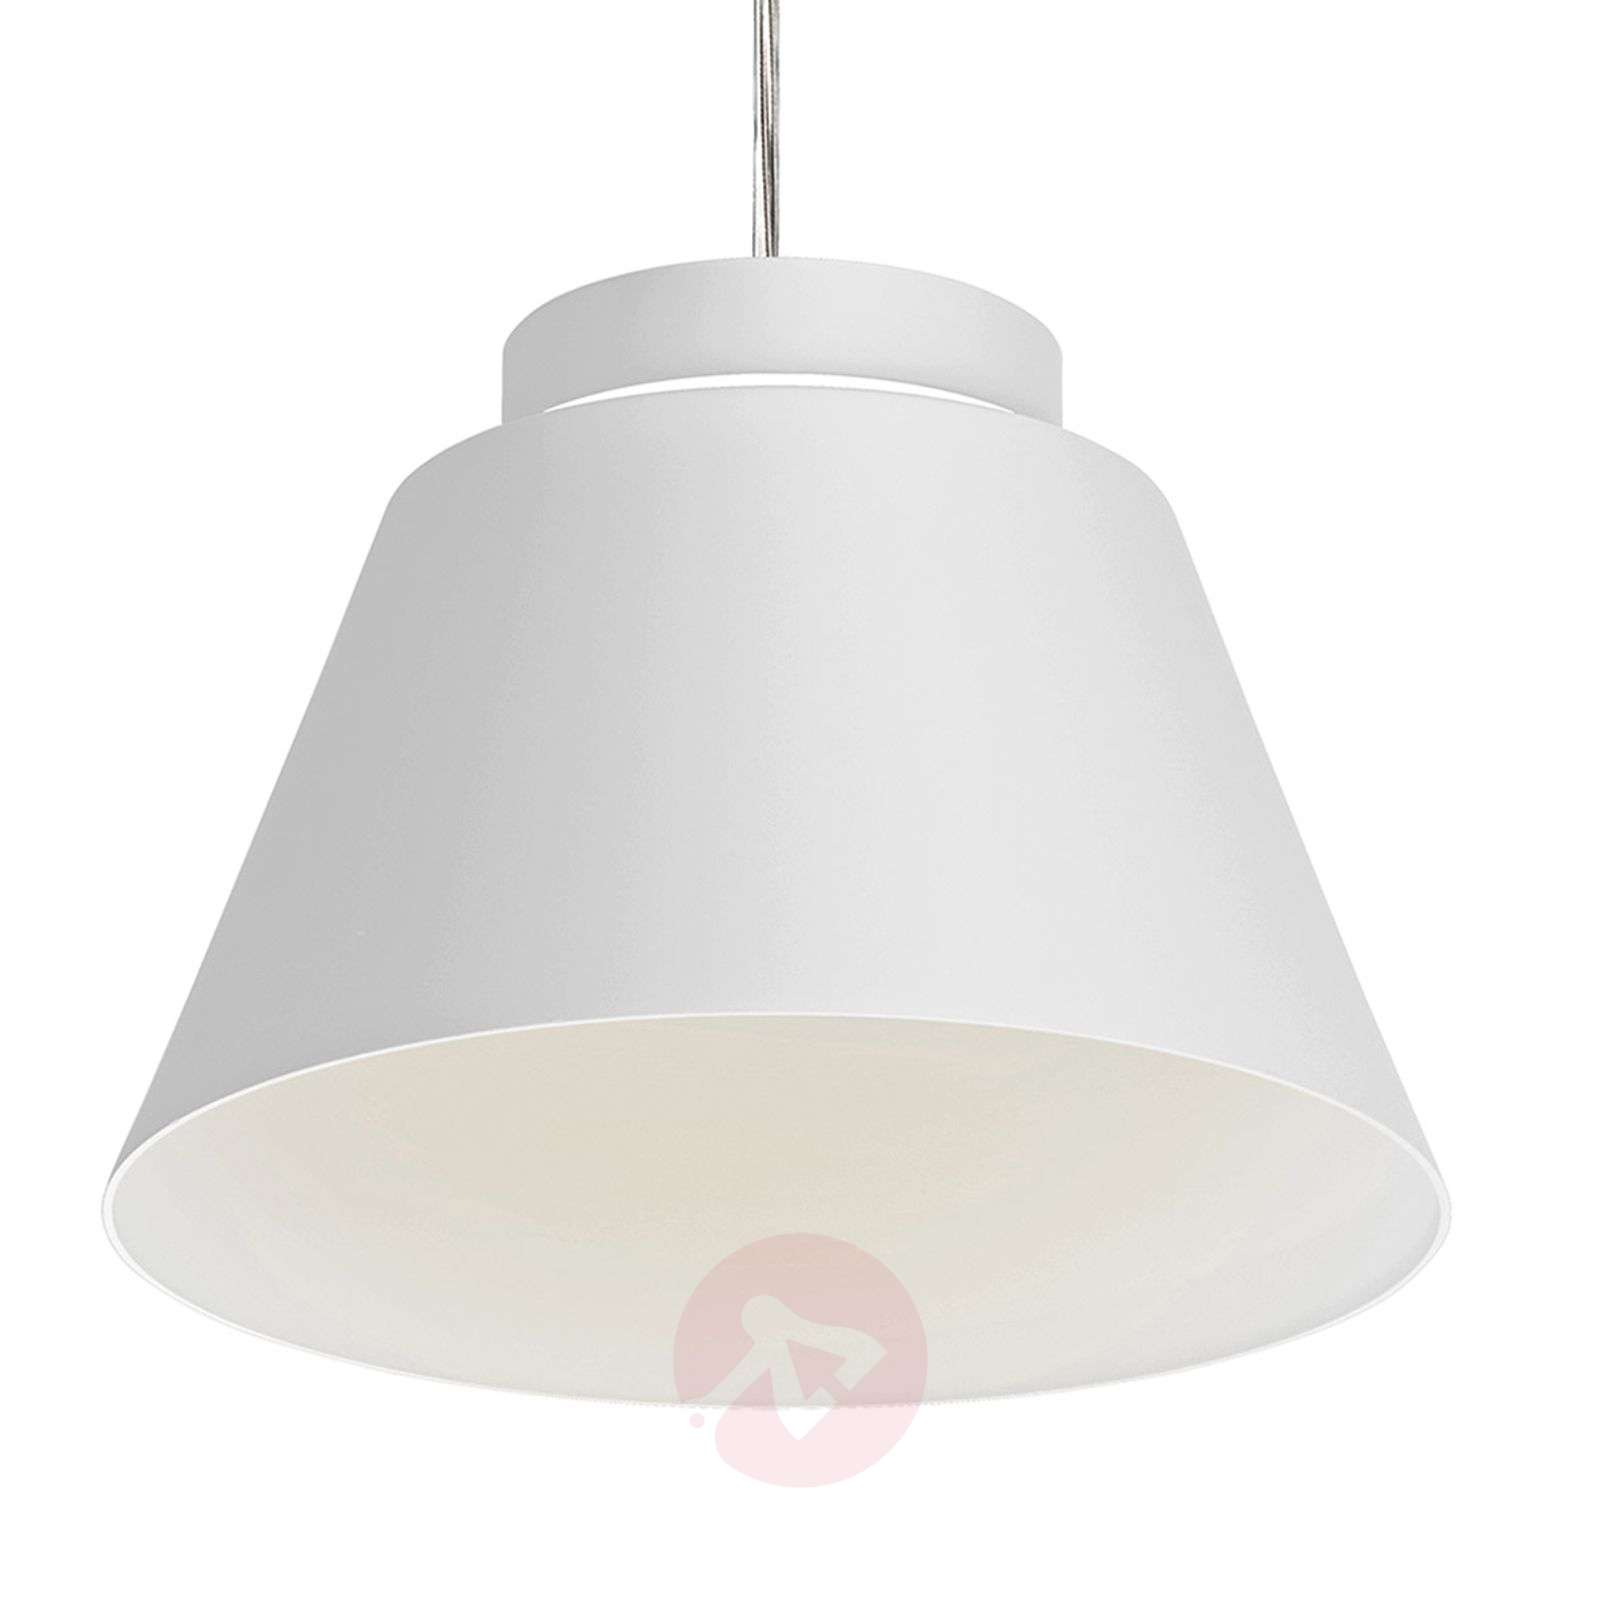 Suspension LED Lia, blanc-3039203-01